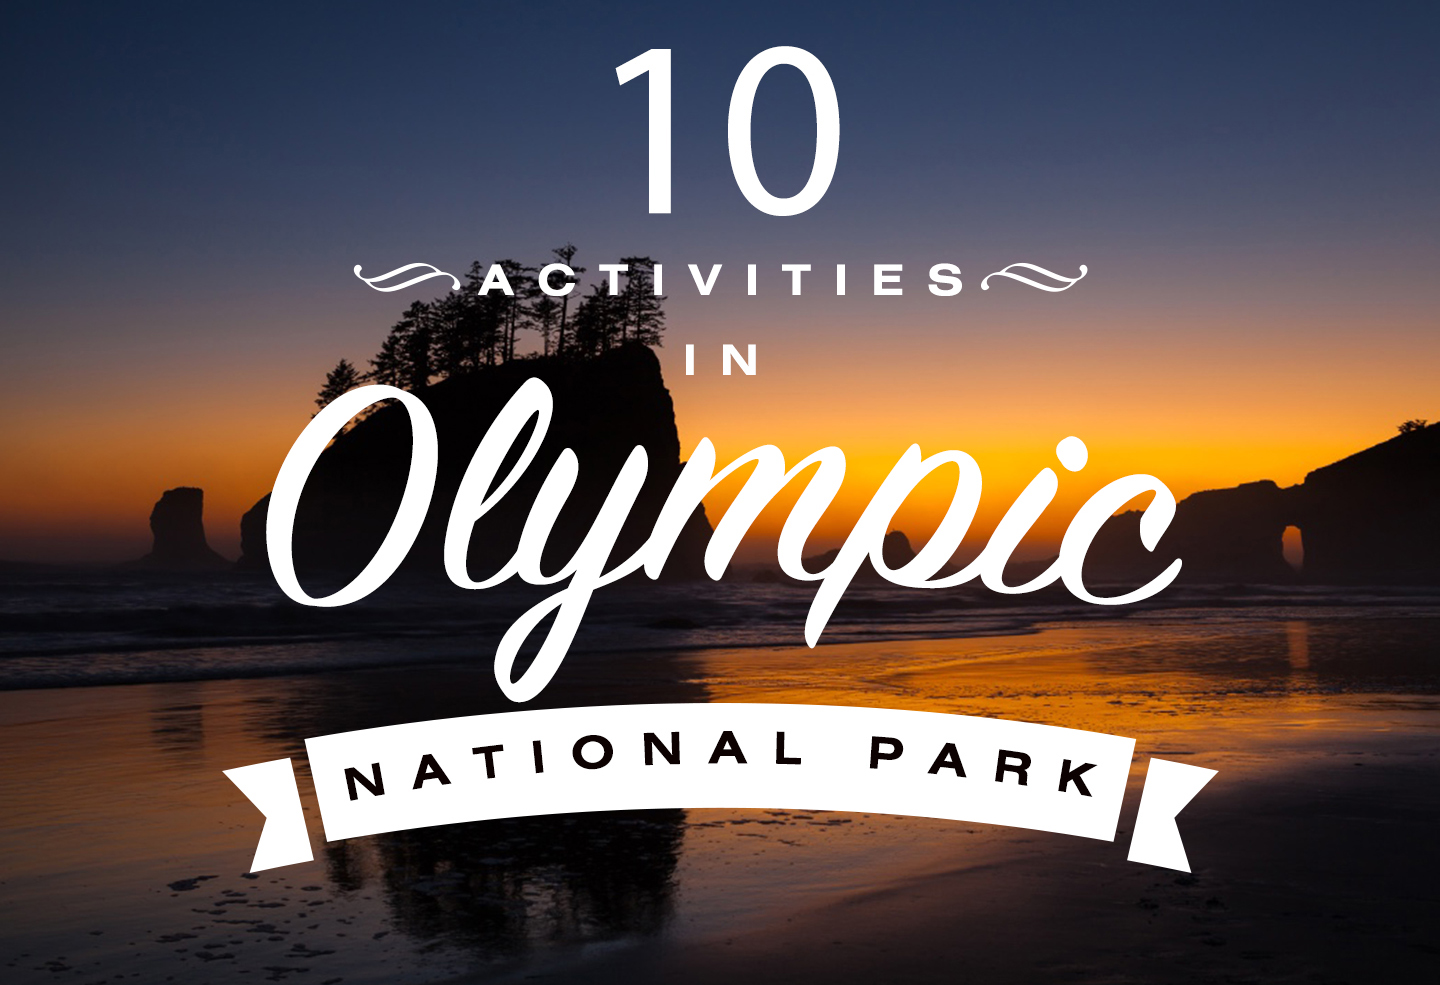 10 Activities In Olympic National Park